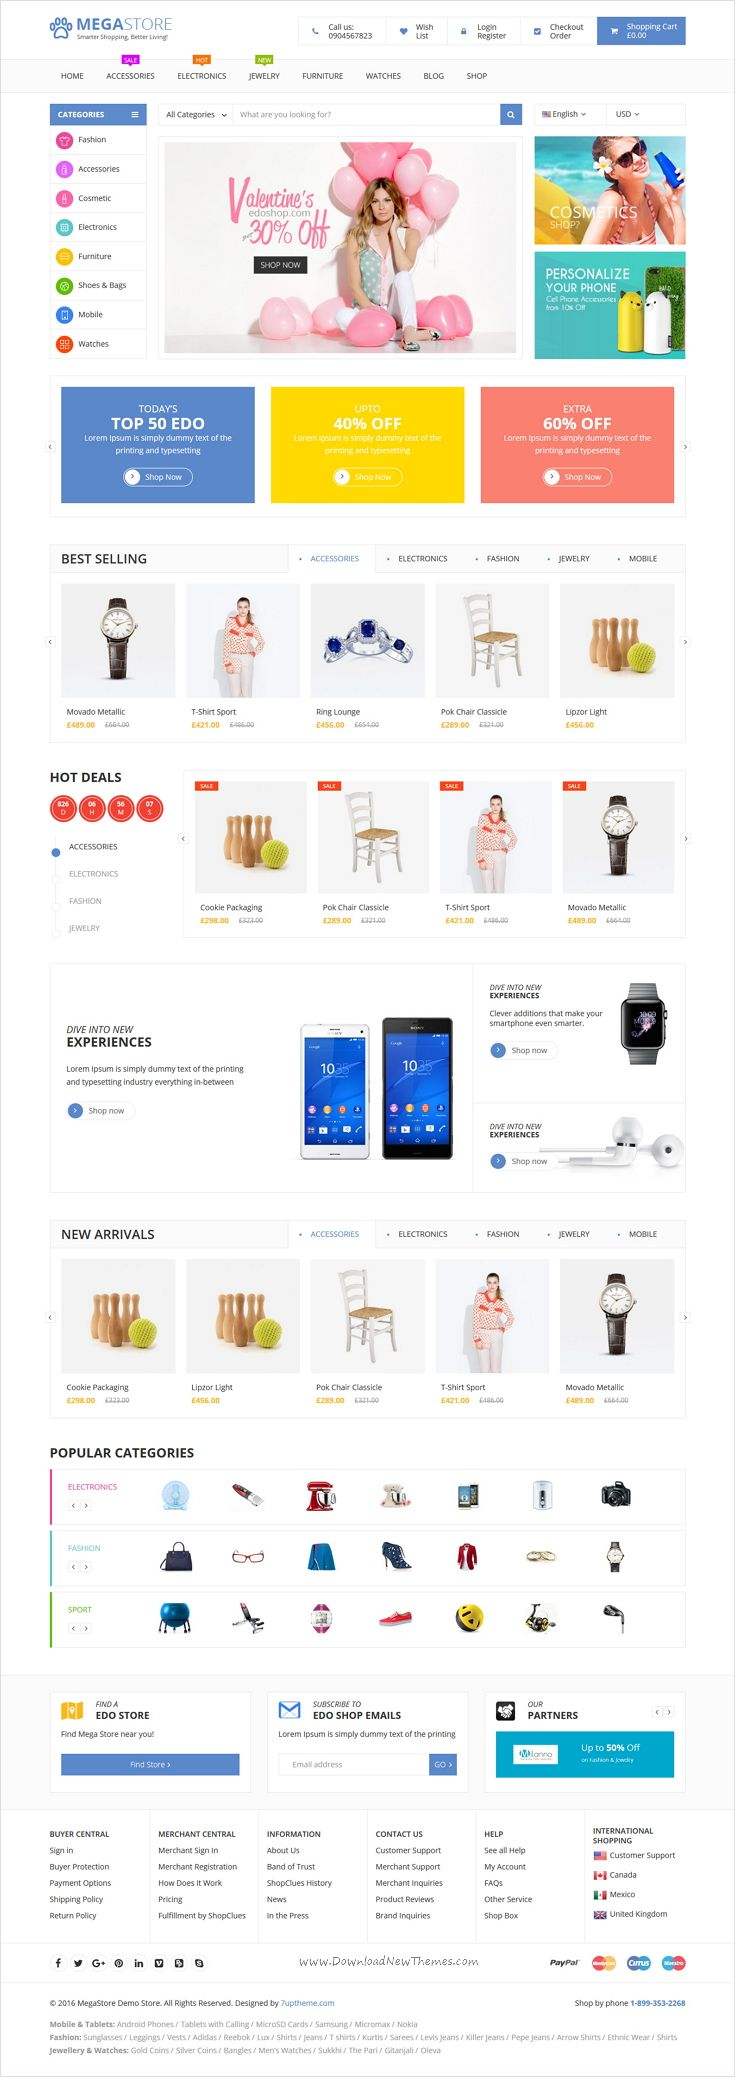 Mega store is beautifully design #WooCommerce @WordPress theme for multipurpose #eCommerce website with 6+ stunning homepage layouts download now➩ https://themeforest.net/item/mega-store-woocommerce-wordpress-theme/16846286?ref=Datasata